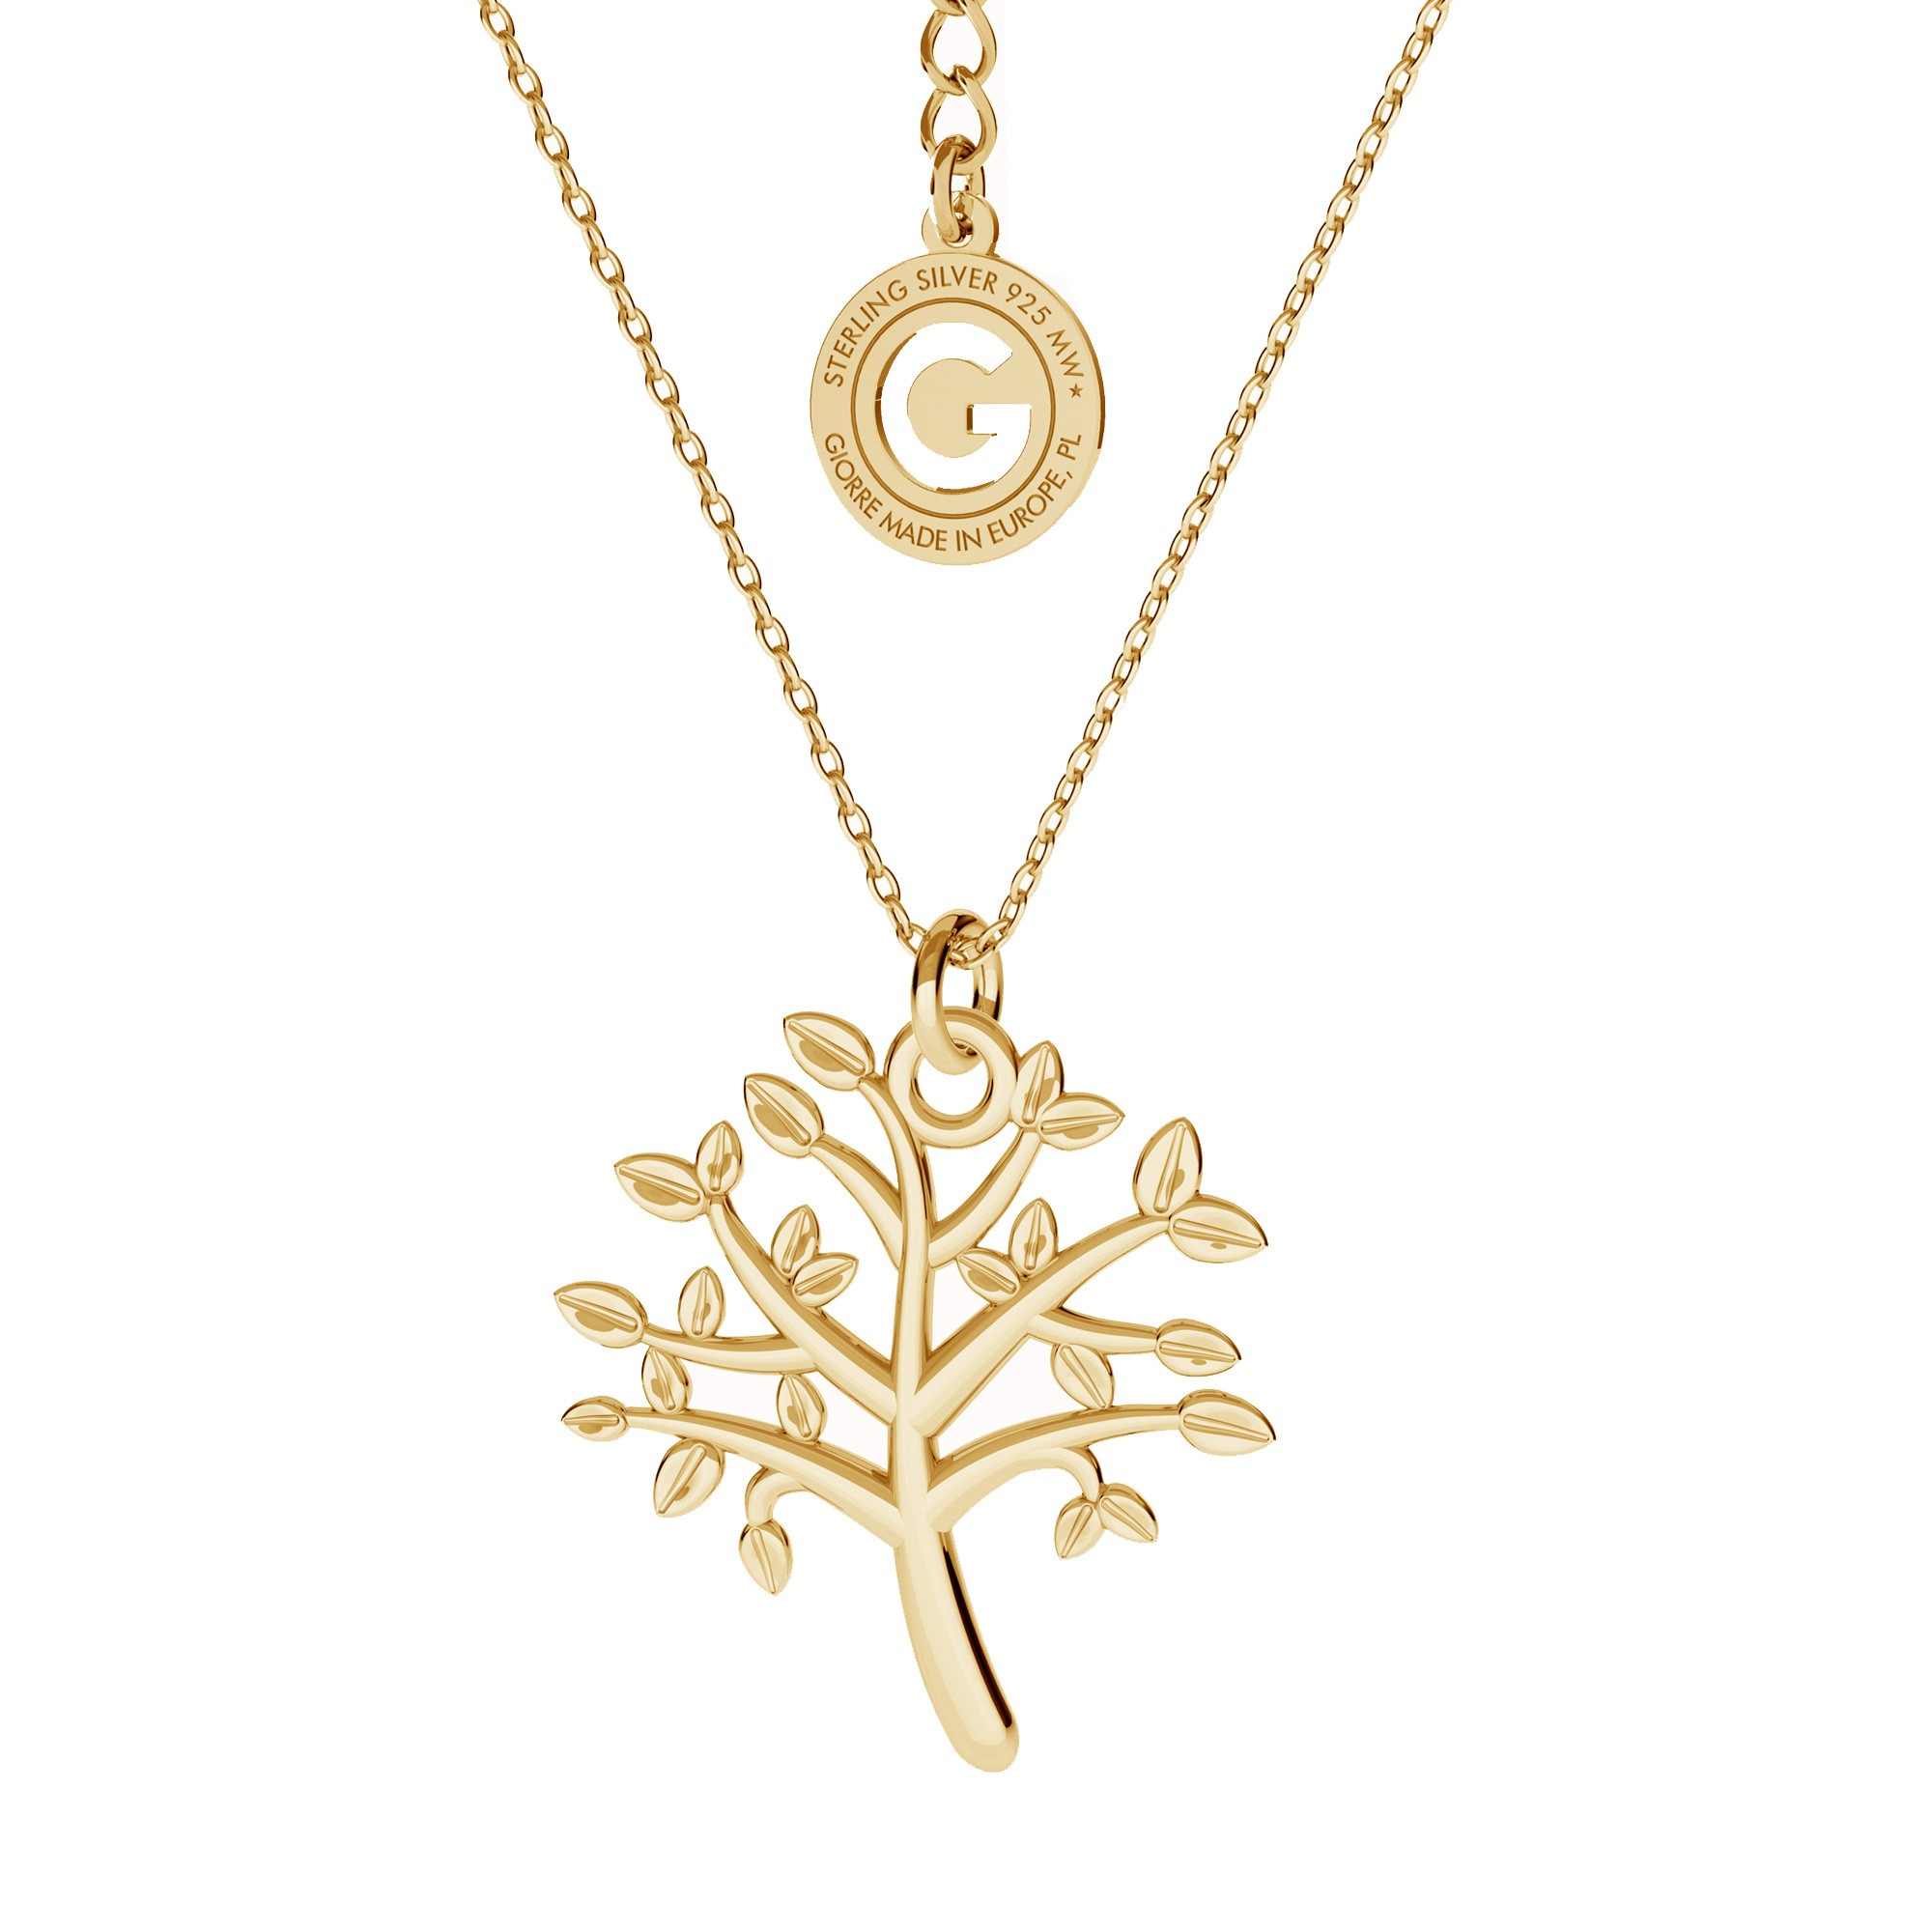 Tree of life necklace sterling silver 925